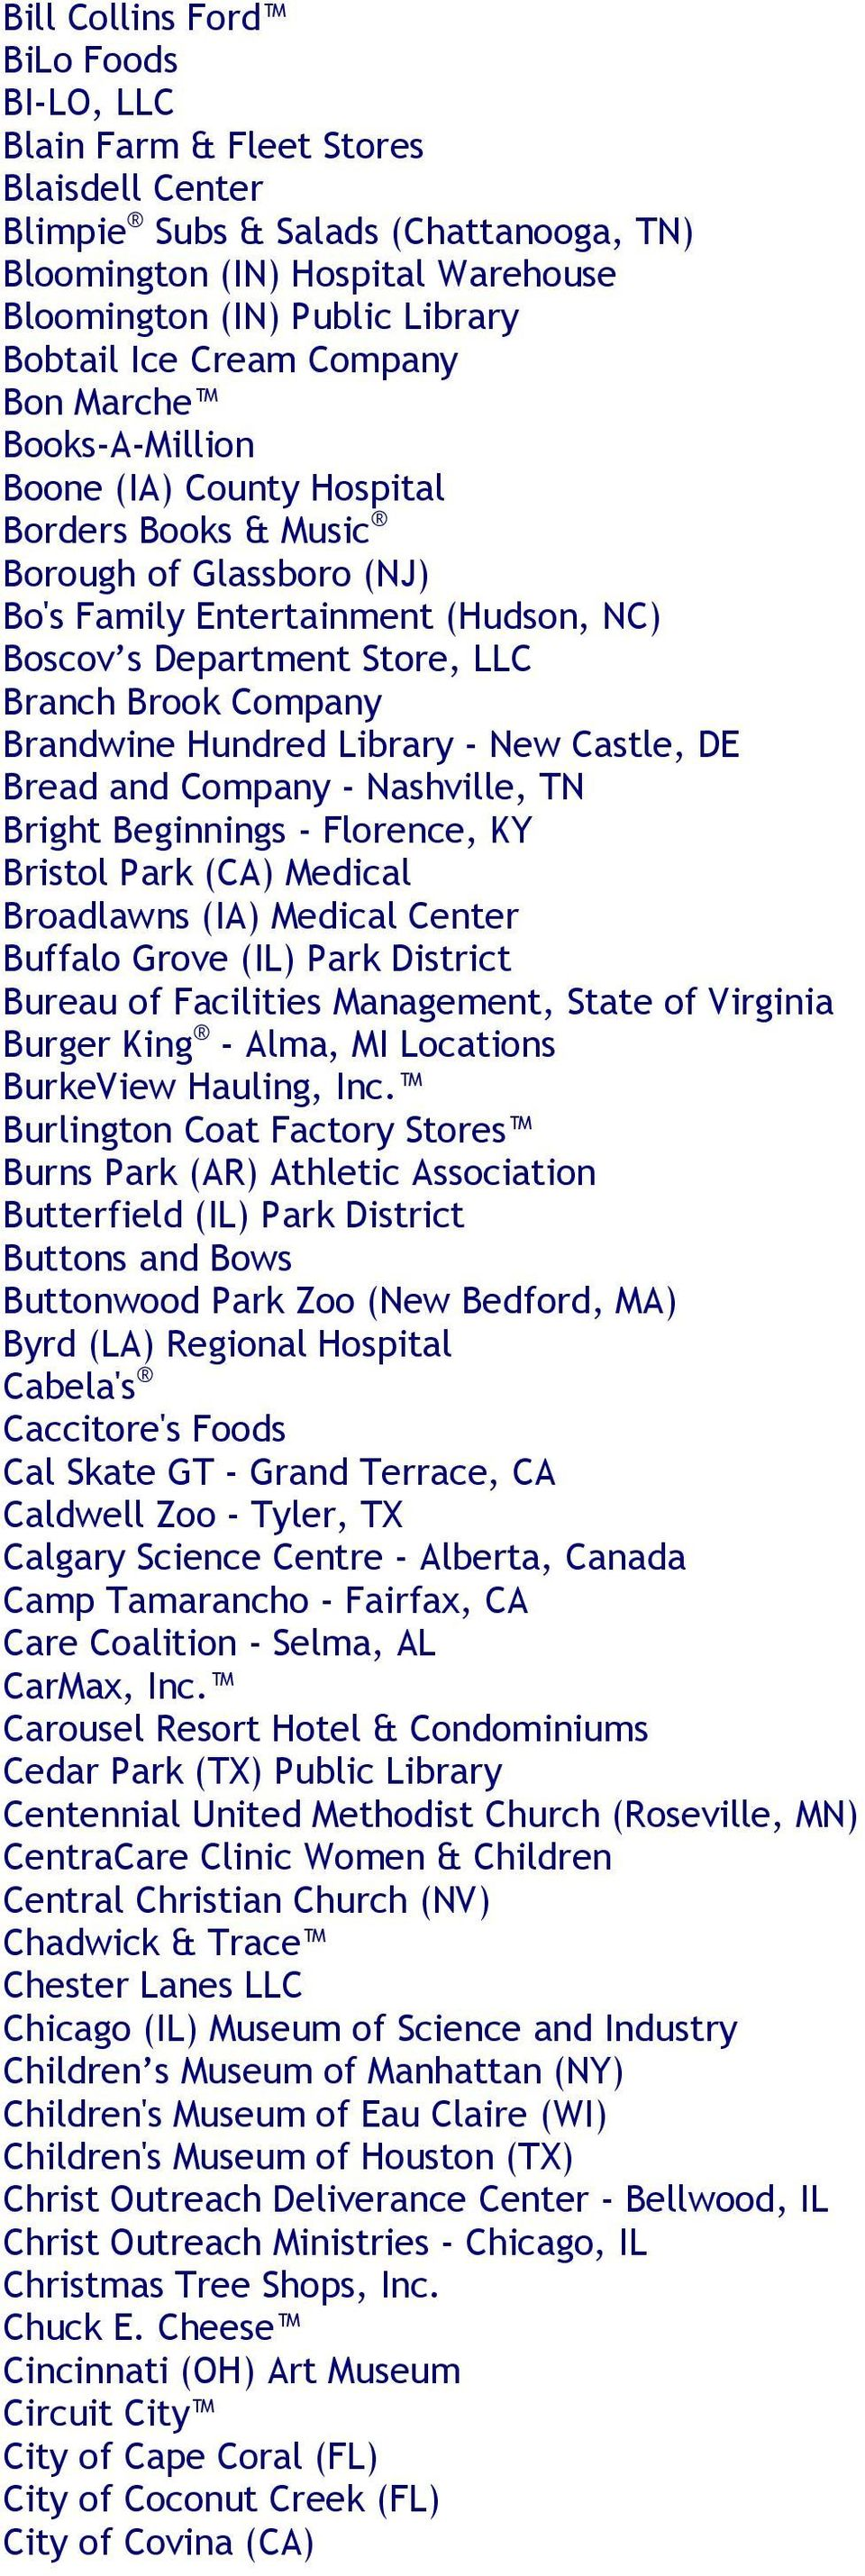 Brook Company Brandwine Hundred Library - New Castle, DE Bread and Company - Nashville, TN Bright Beginnings - Florence, KY Bristol Park (CA) Medical Broadlawns (IA) Medical Center Buffalo Grove (IL)